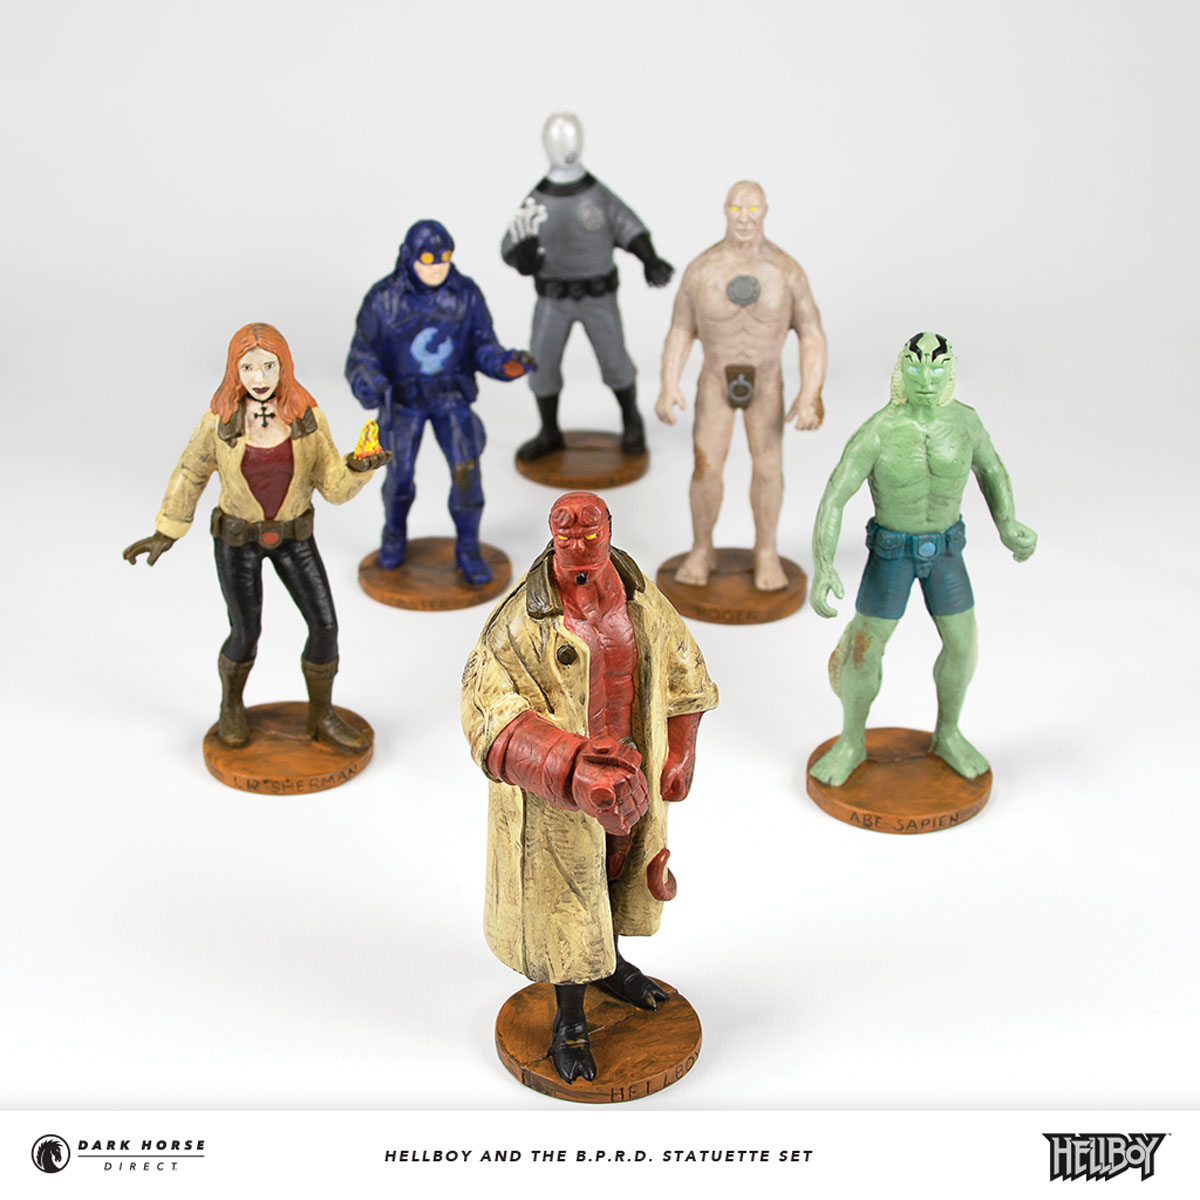 Hellboy and the B.D.P.D. Statuette Set